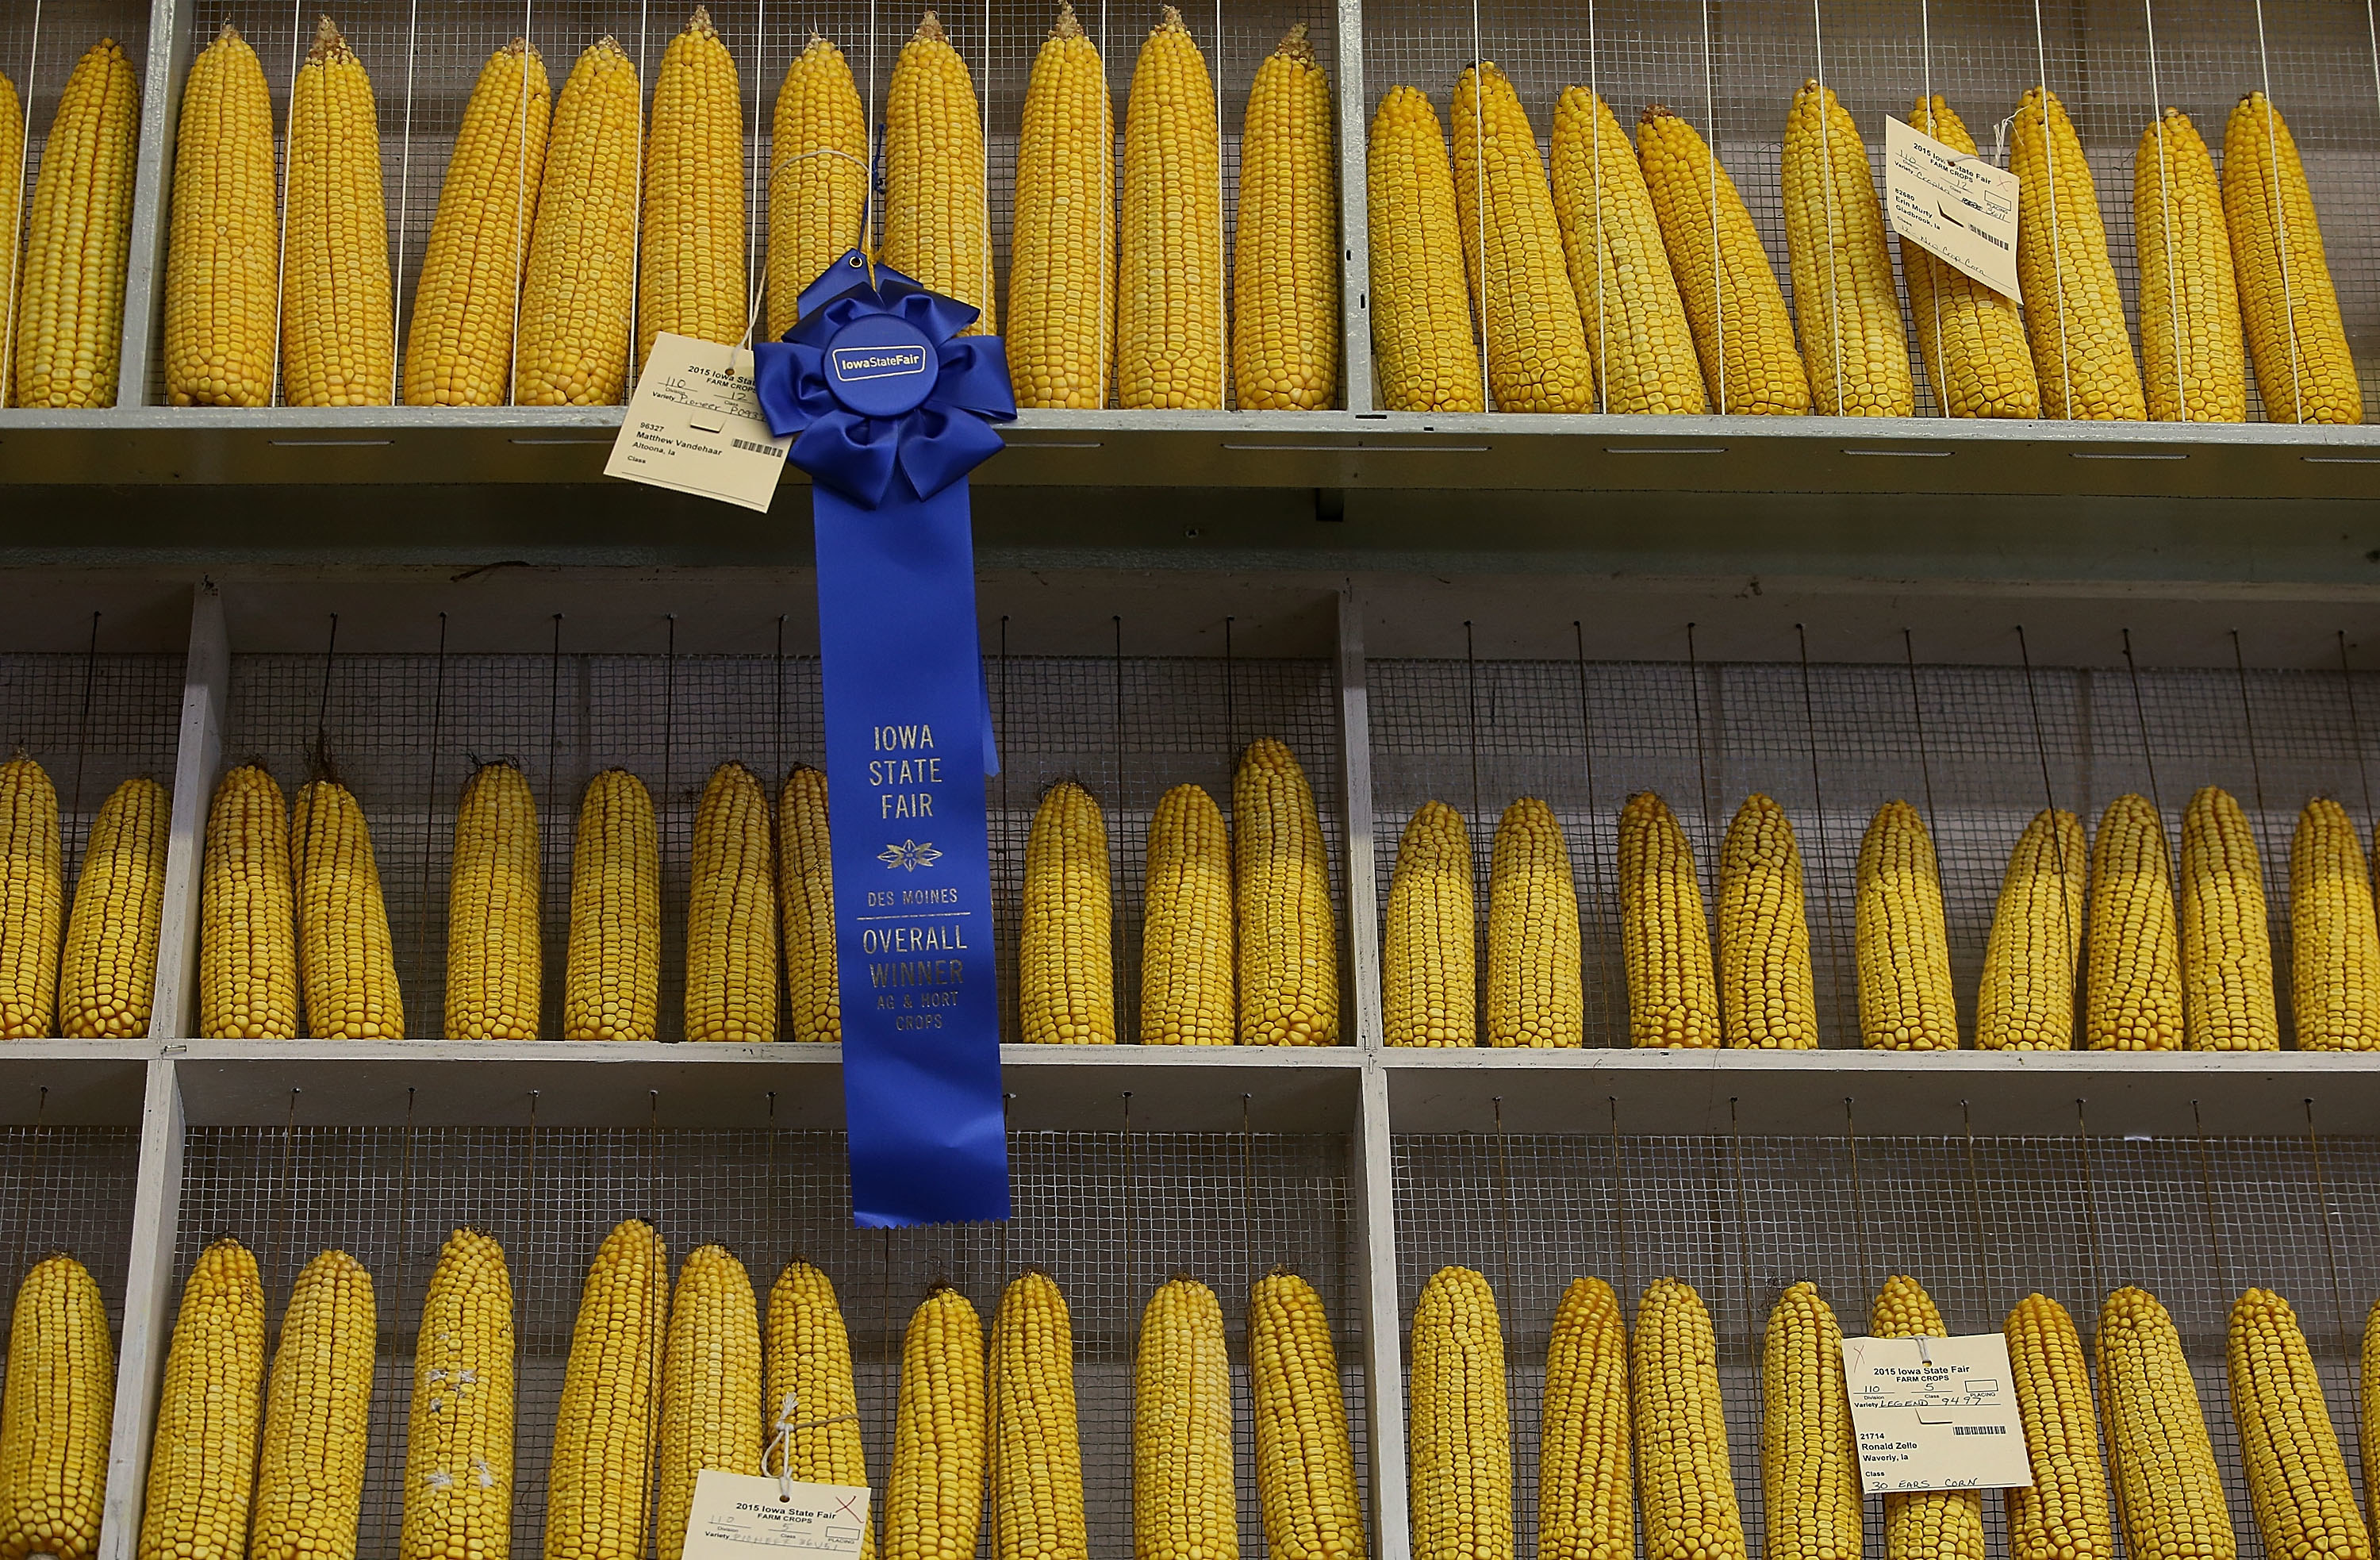 Rows of corn are seen behind a blue ribbon award at the Iowa State Fair